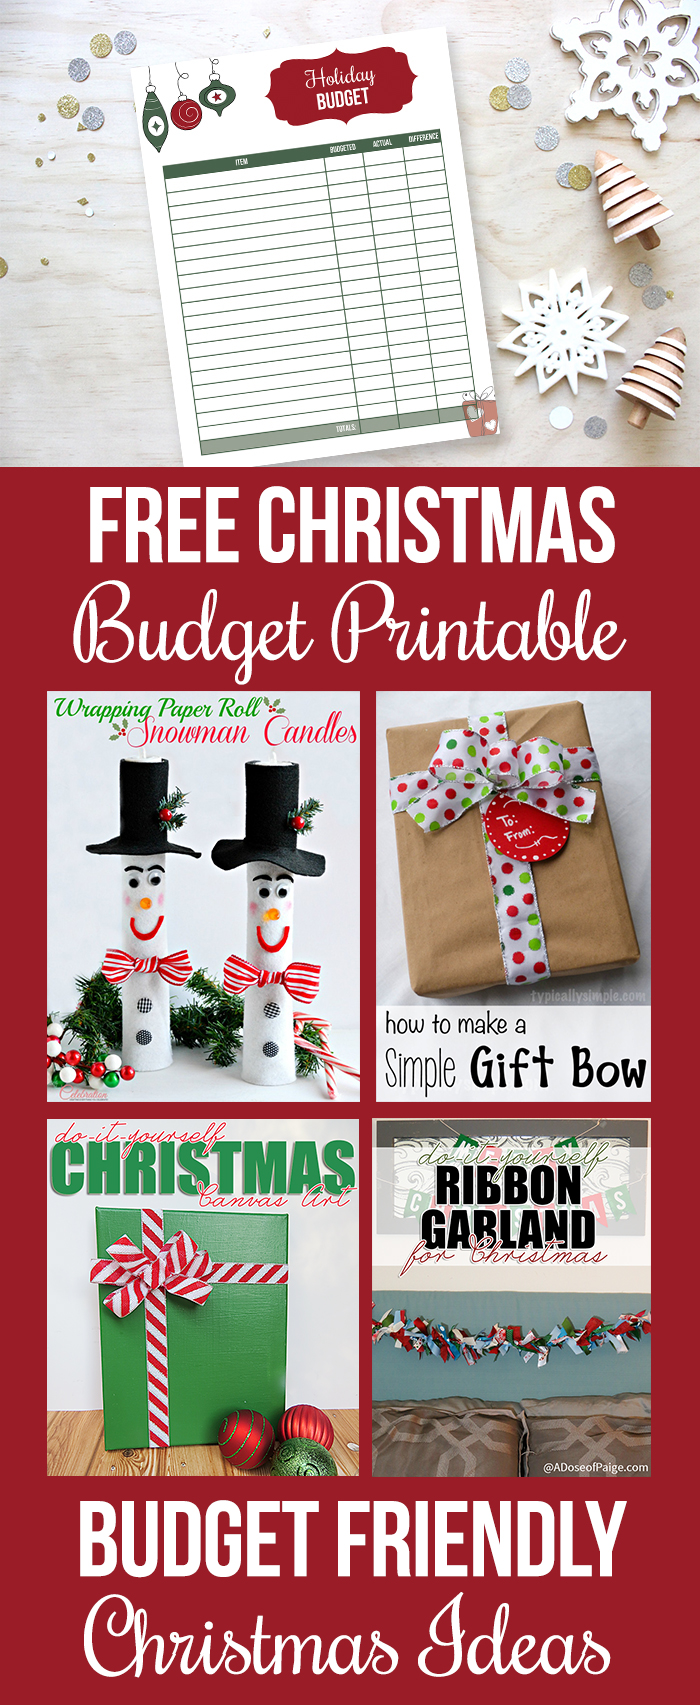 Free Christmas budget printable and frugal Christmas gift and decor ideas.